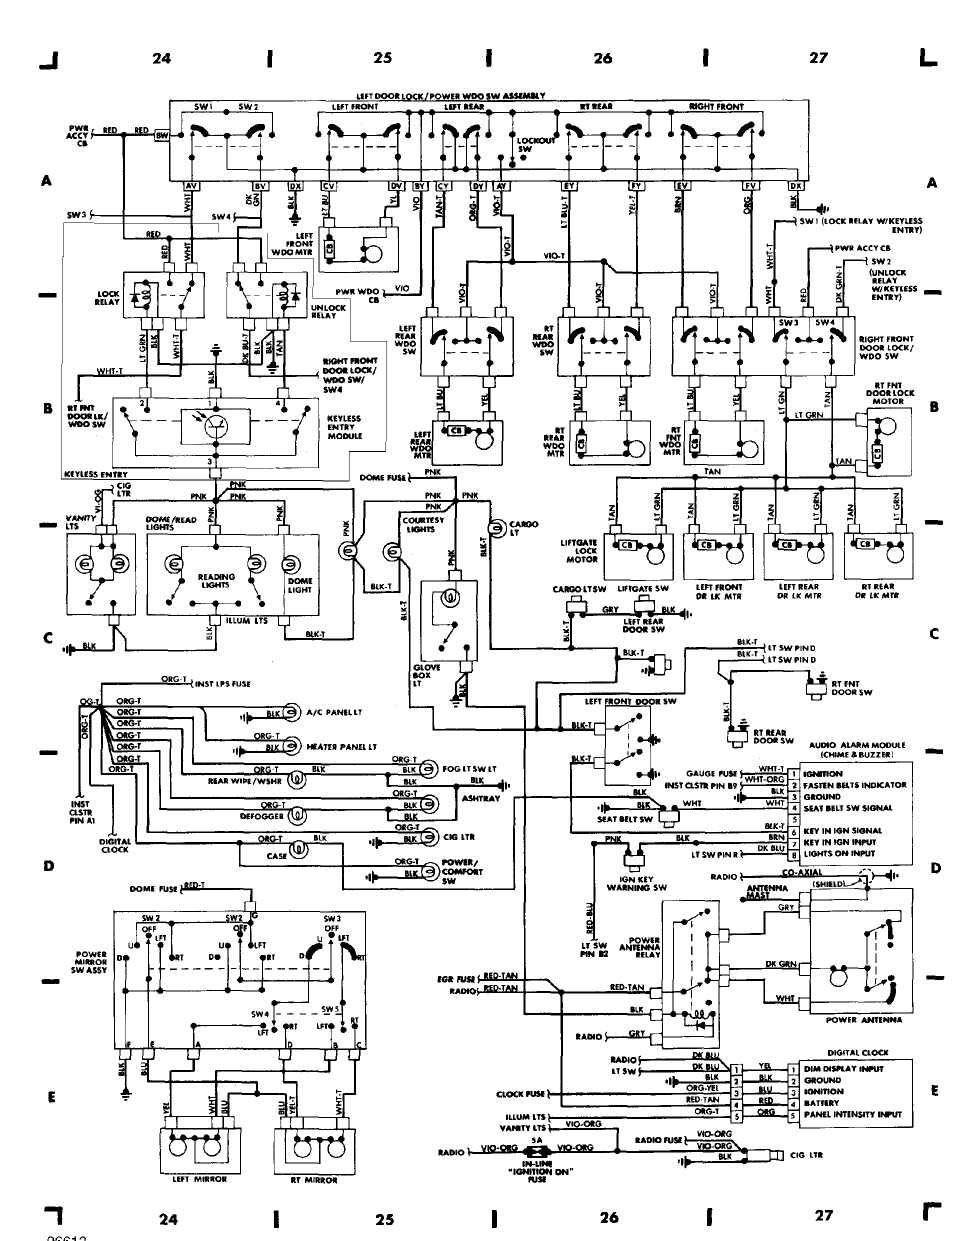 wiring_diagrams_html_61f5e0ad wiring diagrams 1984 1991 jeep cherokee (xj) jeep 95 jeep wrangler wiring harness diagram at crackthecode.co